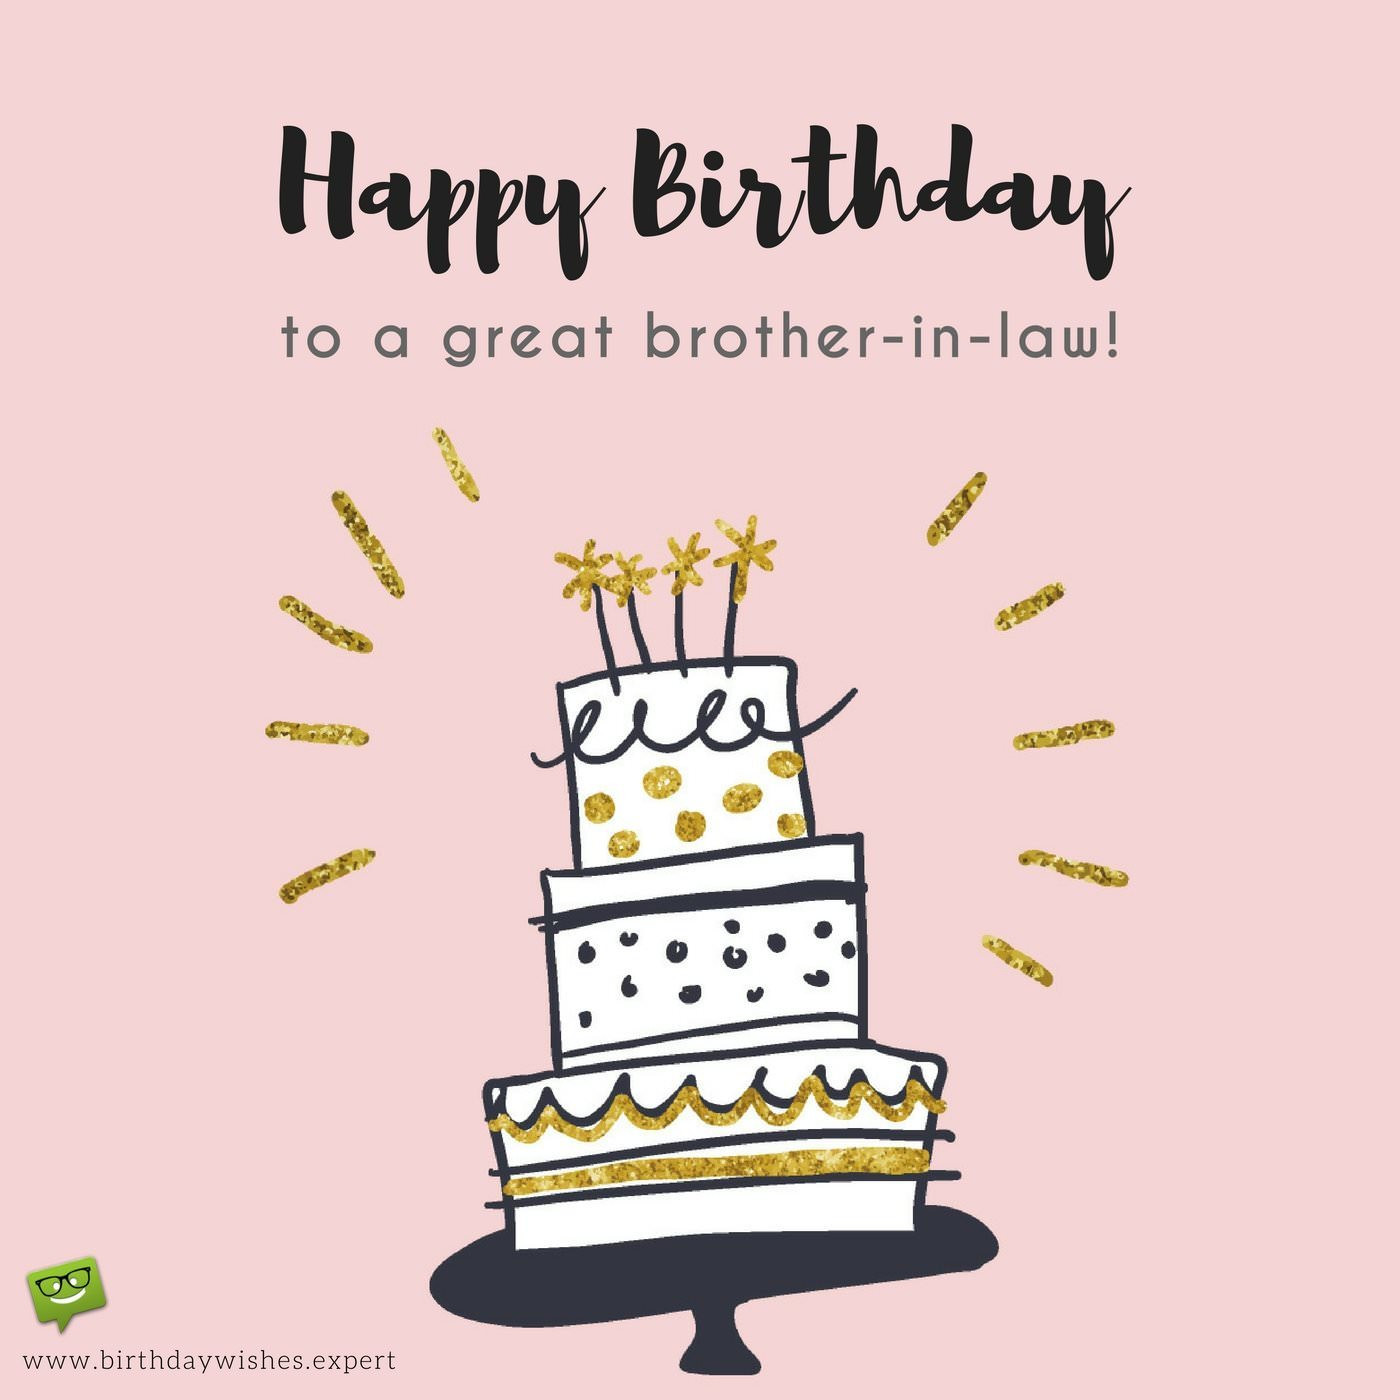 Best ideas about Birthday Wishes For Brother In Law . Save or Pin Birthday Wishes for your Brother in Law Now.